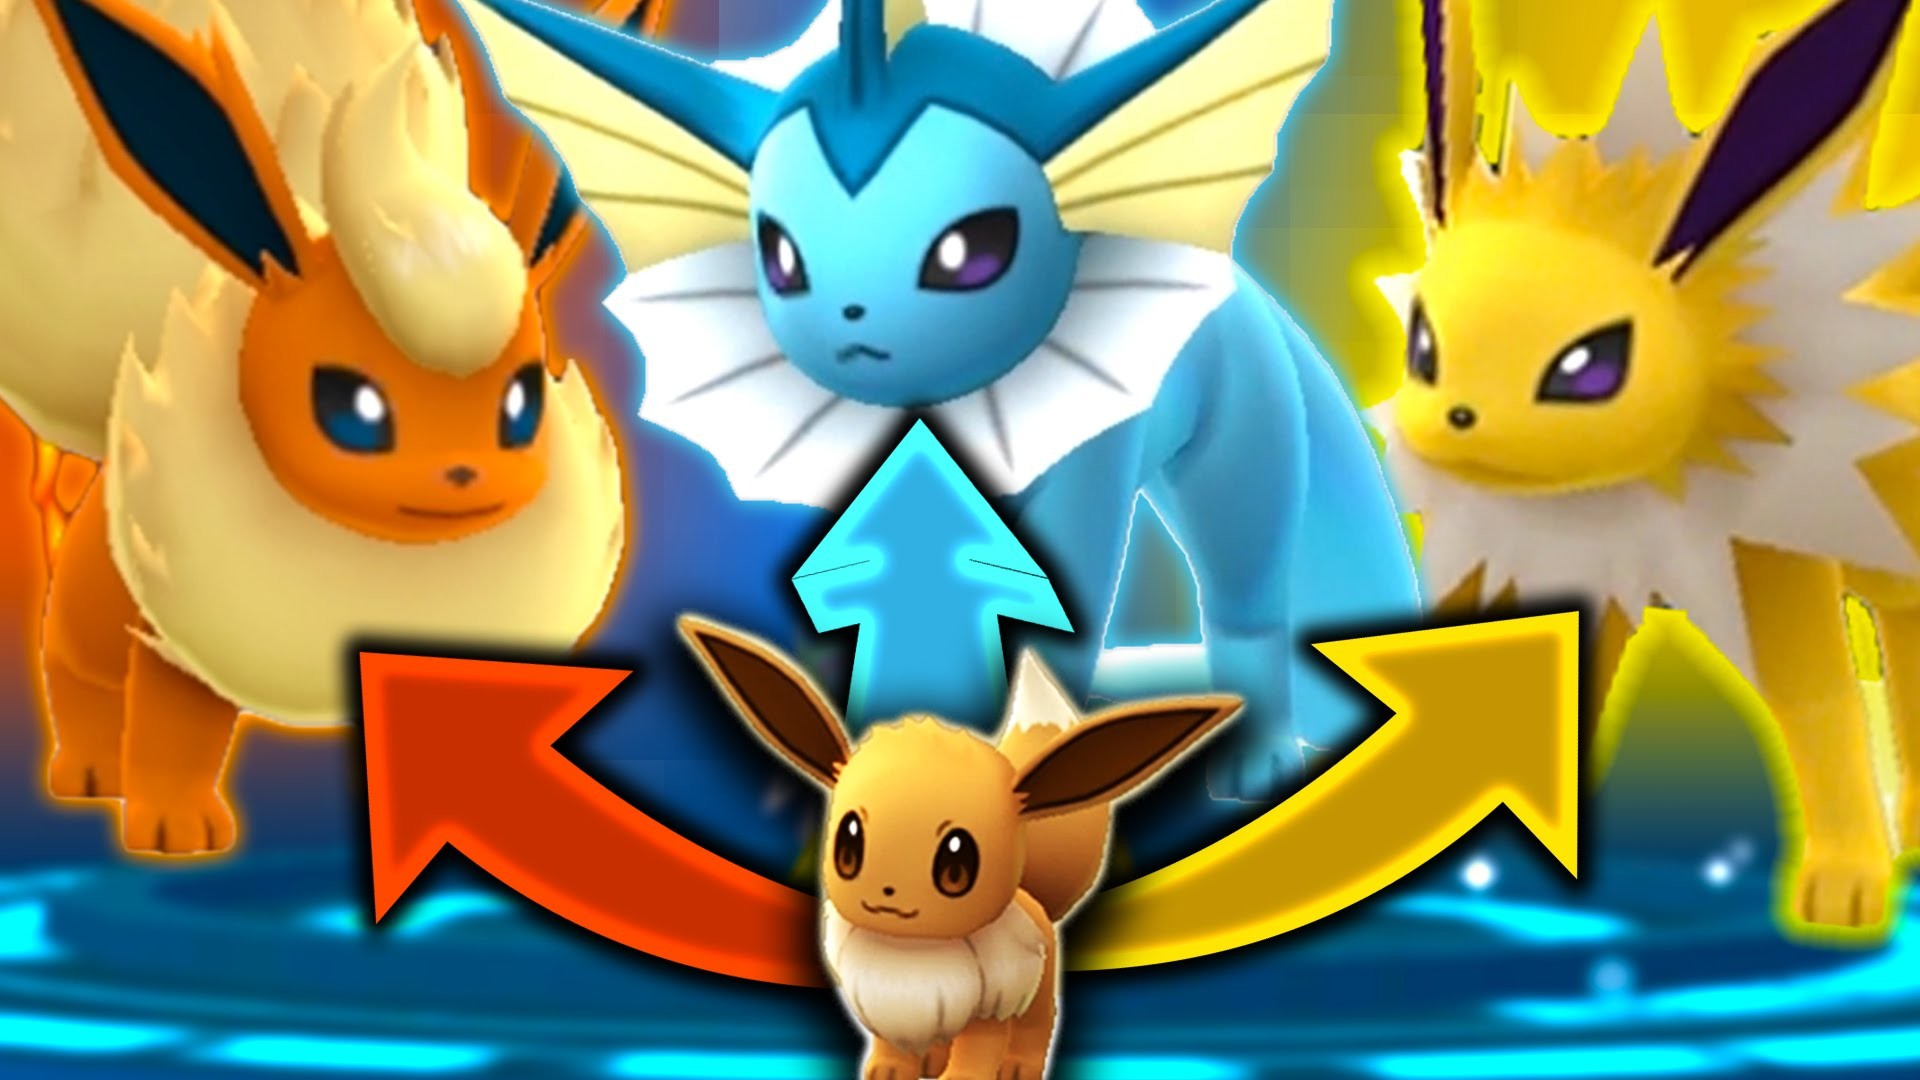 1920x1080 Pokemon GO - SECRET EEVEE EVOLUTION TRICK! (GET ALL 3 EEVEELUTIONS) -  YouTube